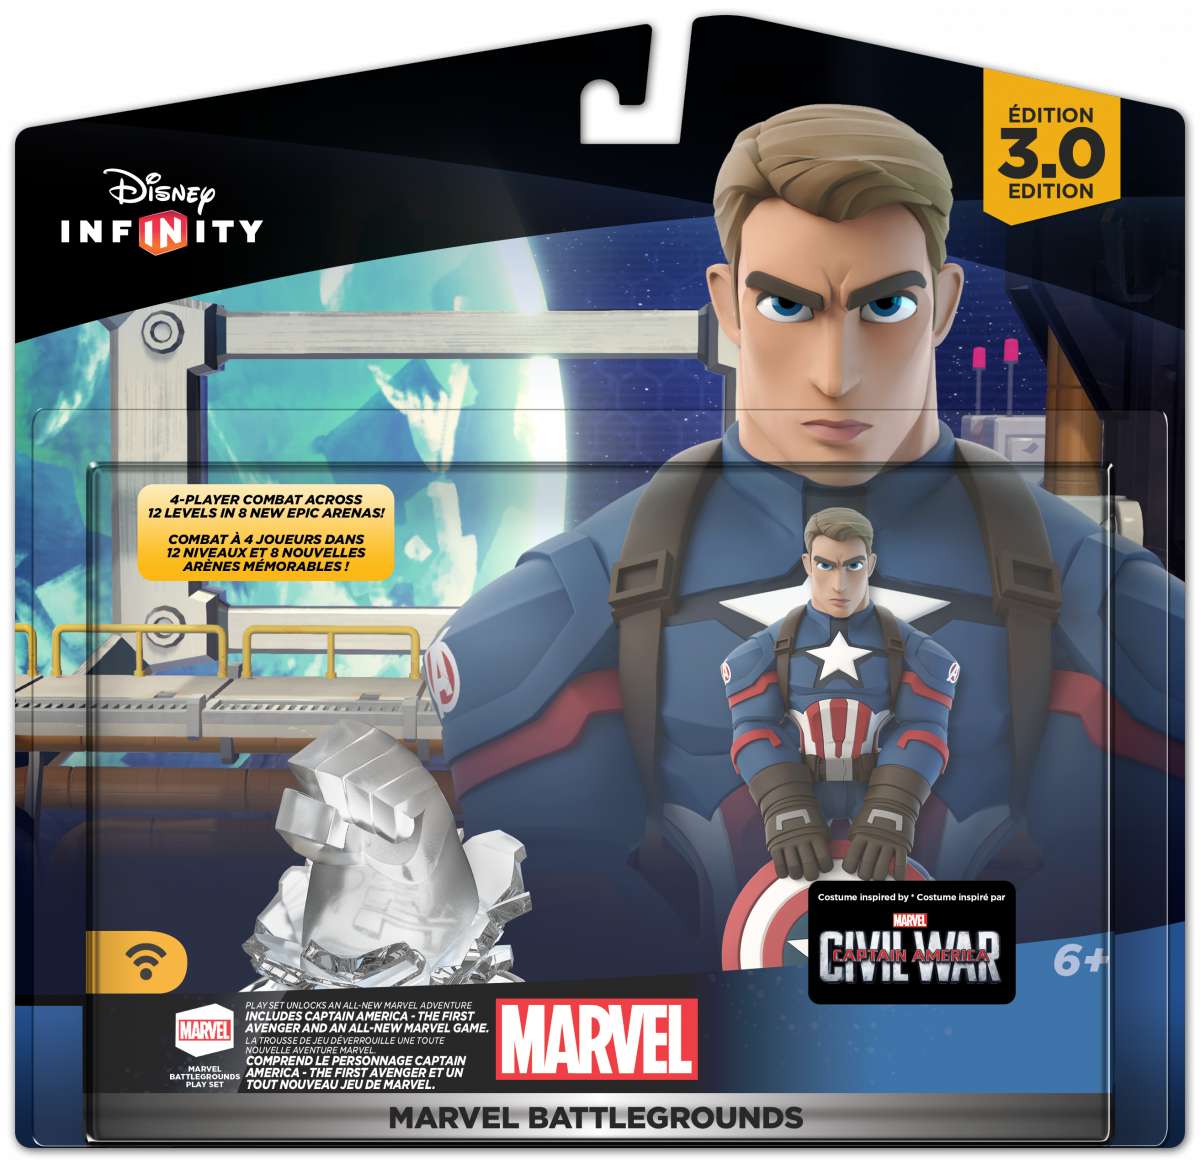 Disney Is Making A Big Awesome Change To Its 1 Billion Disney Infinity Video Game Business Disney Infinity Marvel Disney